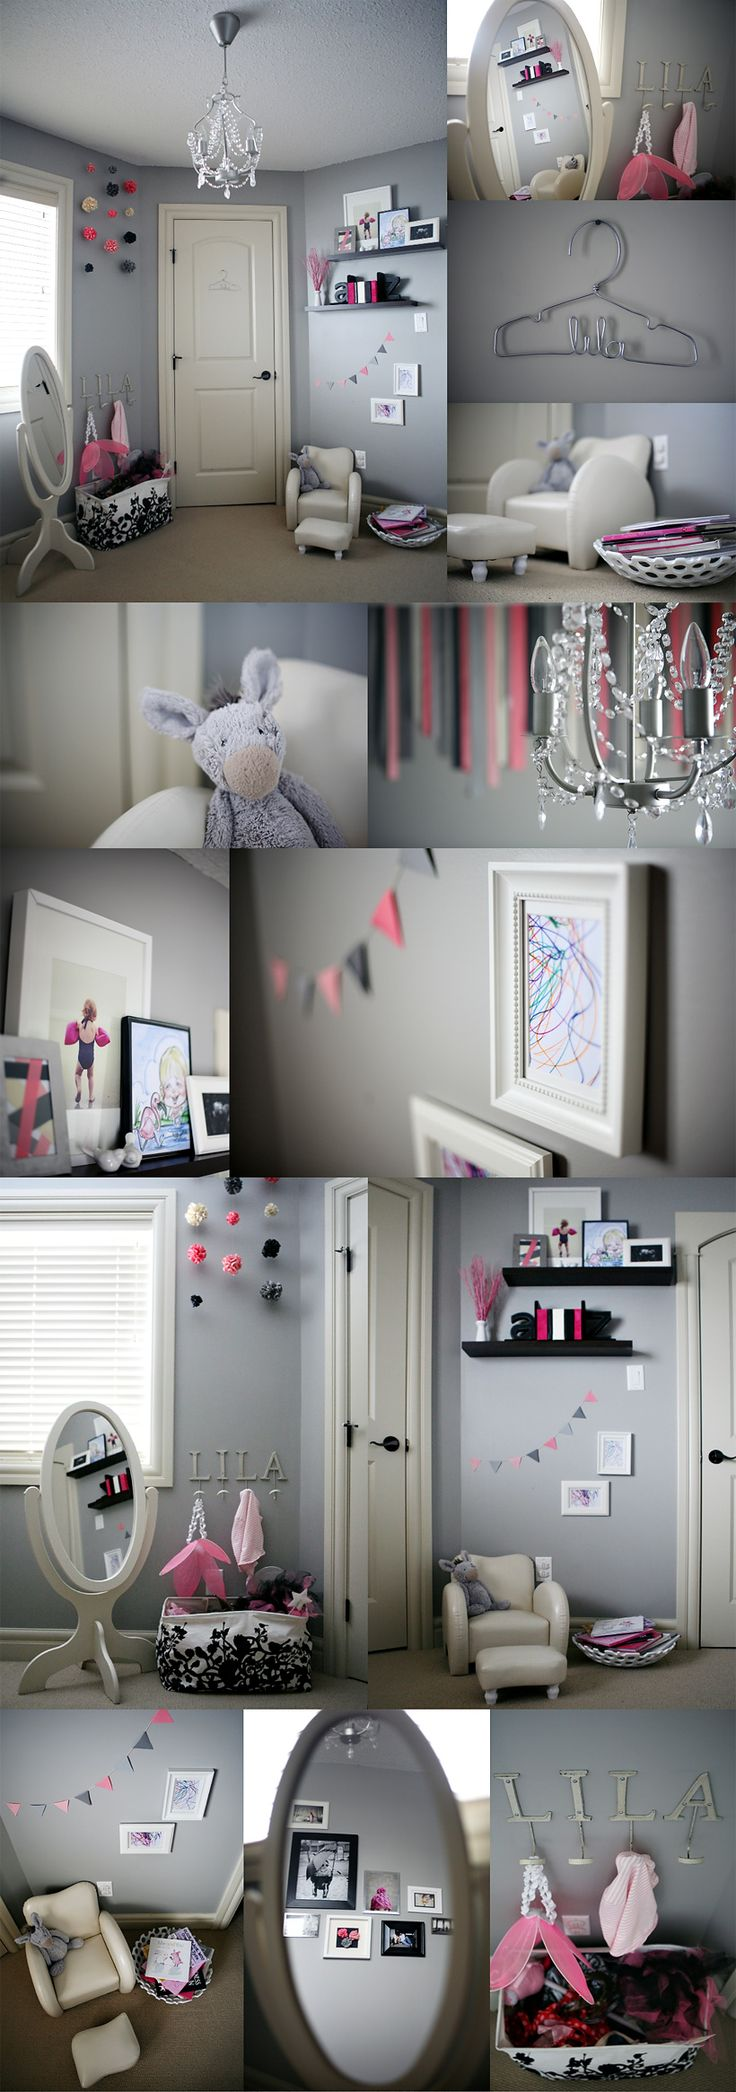 So many things to love about this toddler room!